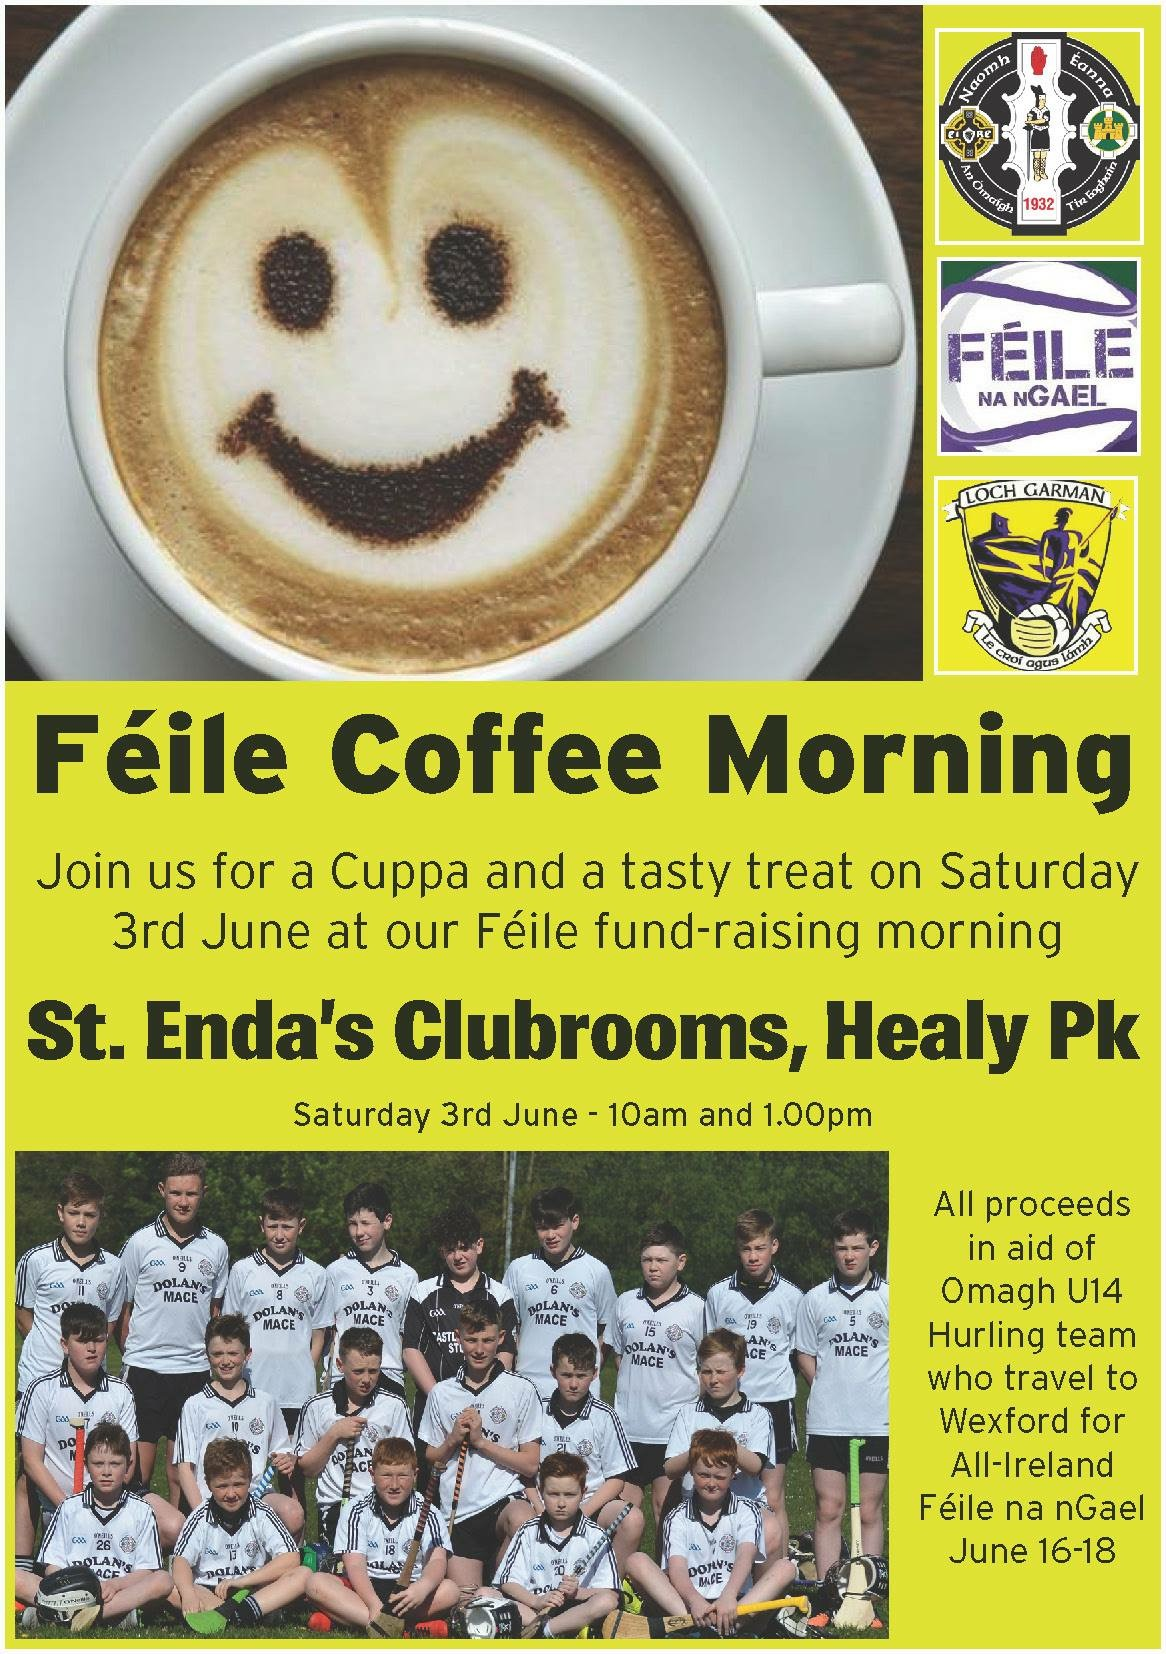 Omagh St. Enda's U14 hurlers host coffee morning